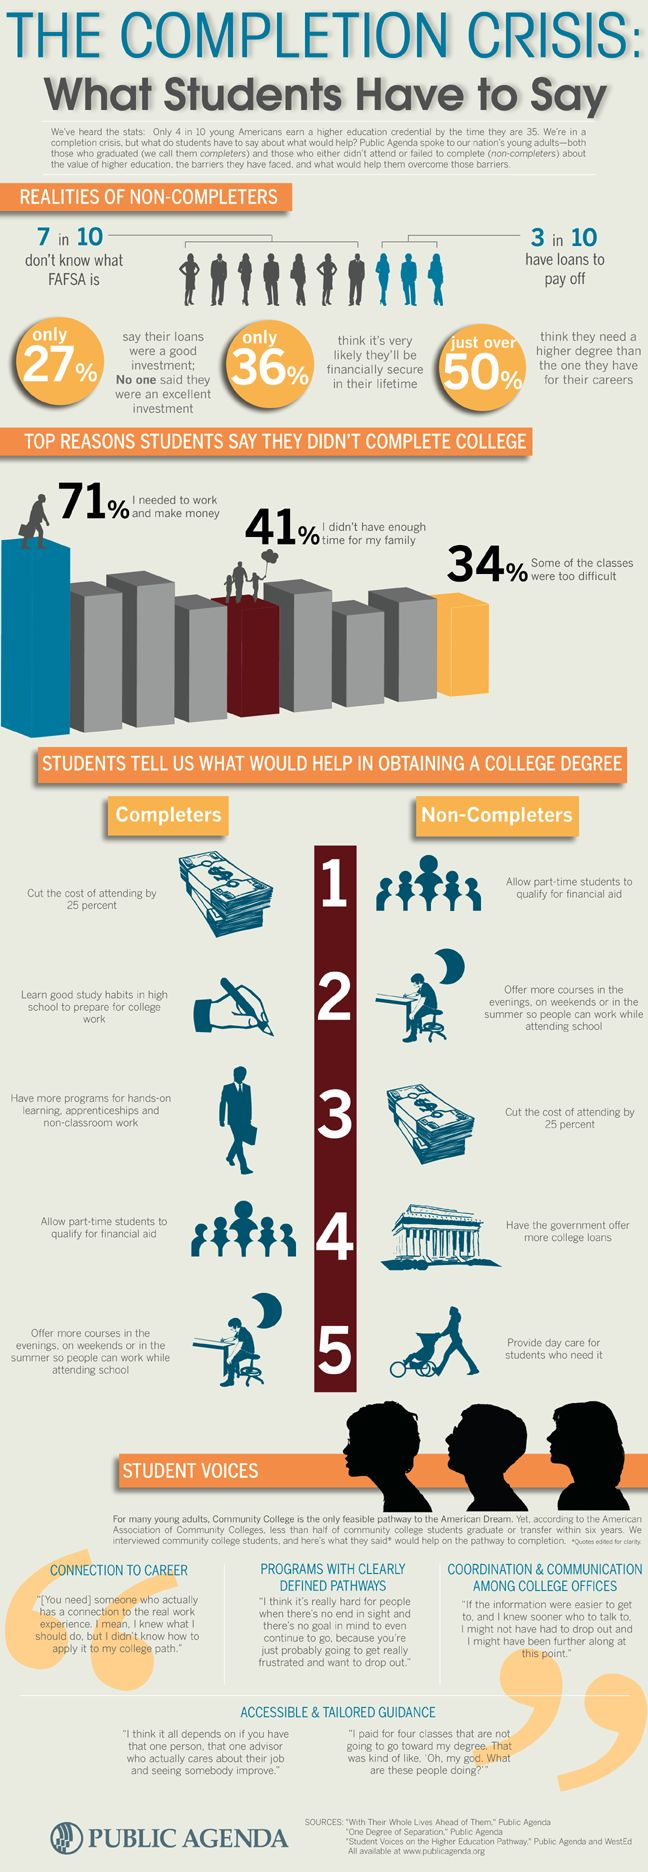 Here's what students who completed and those who were unable to complete their degrees say would help them achieve success in college. How can we inco